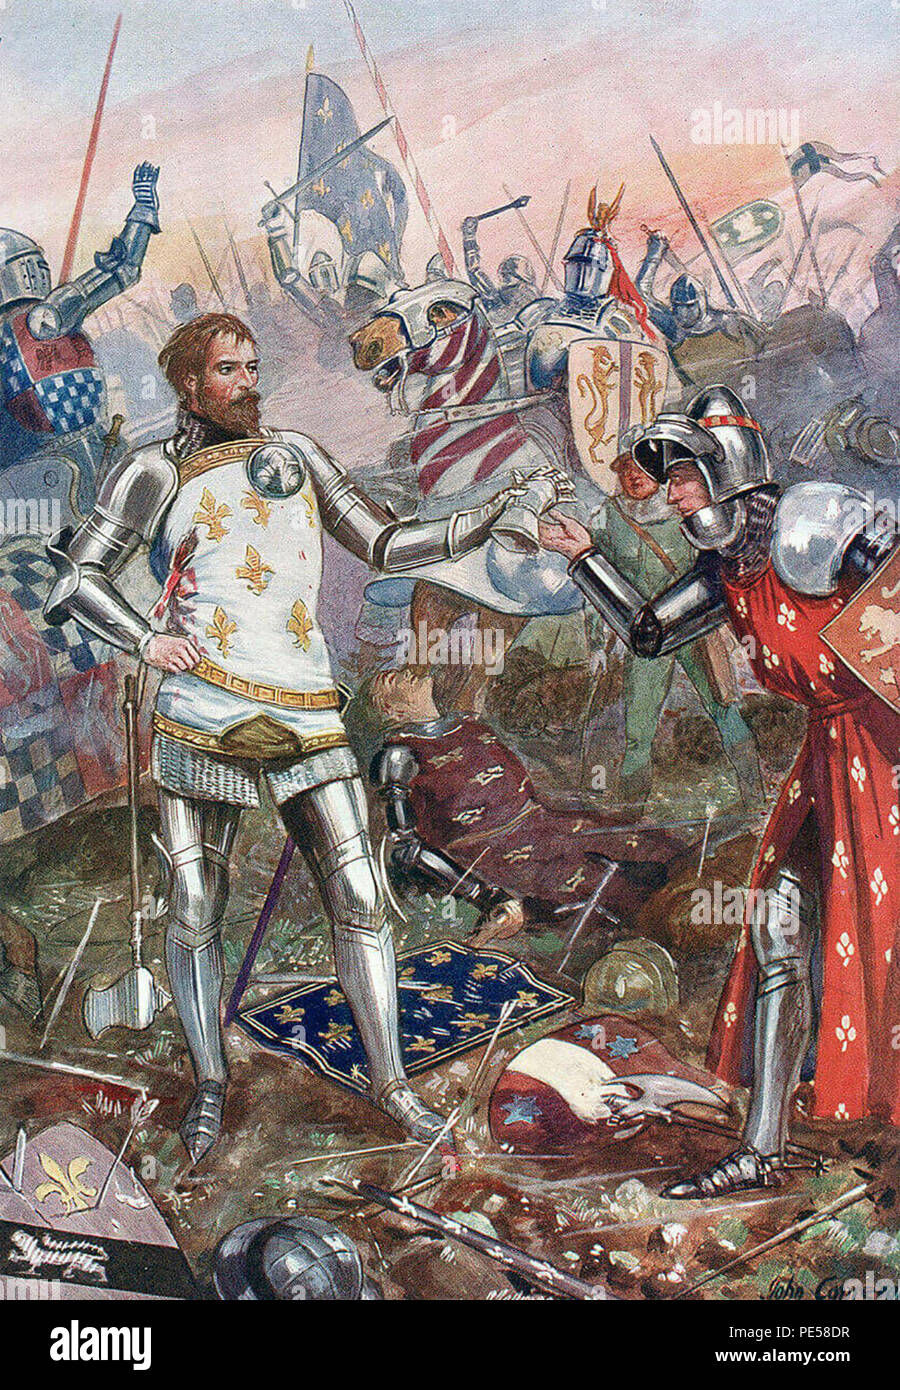 BATTLE OF POITIERS 19 September 1356 by English military artist Harry Payne about 1910. Edward, the Black Prince, is shown accepting the surrender of King John II of France - Stock Image